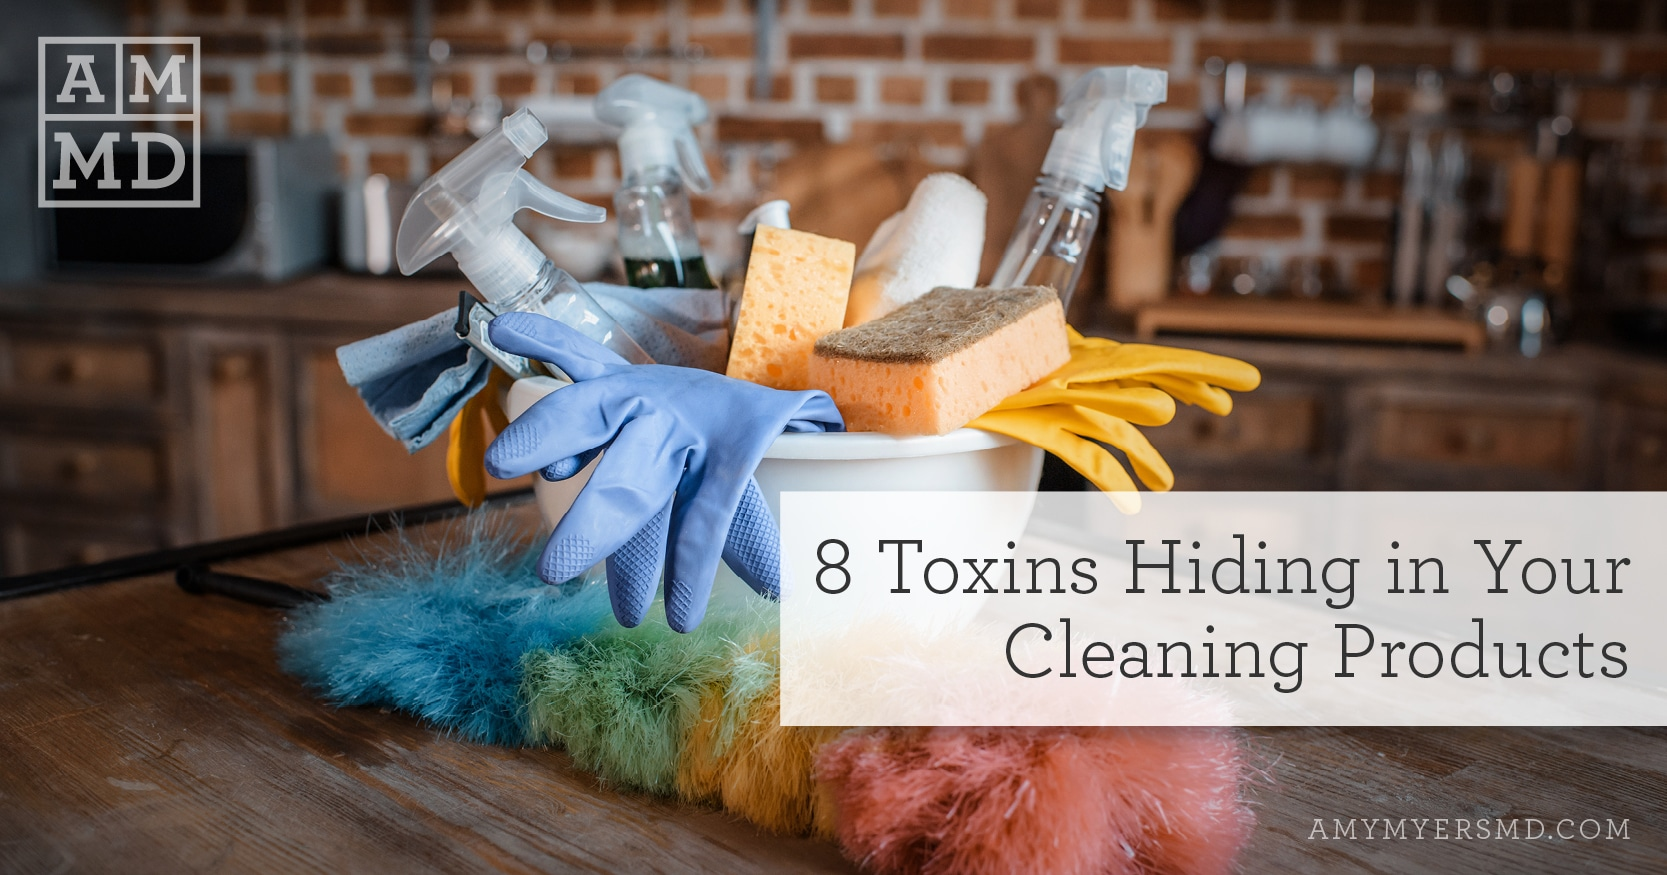 toxins hiding in your cleaning products